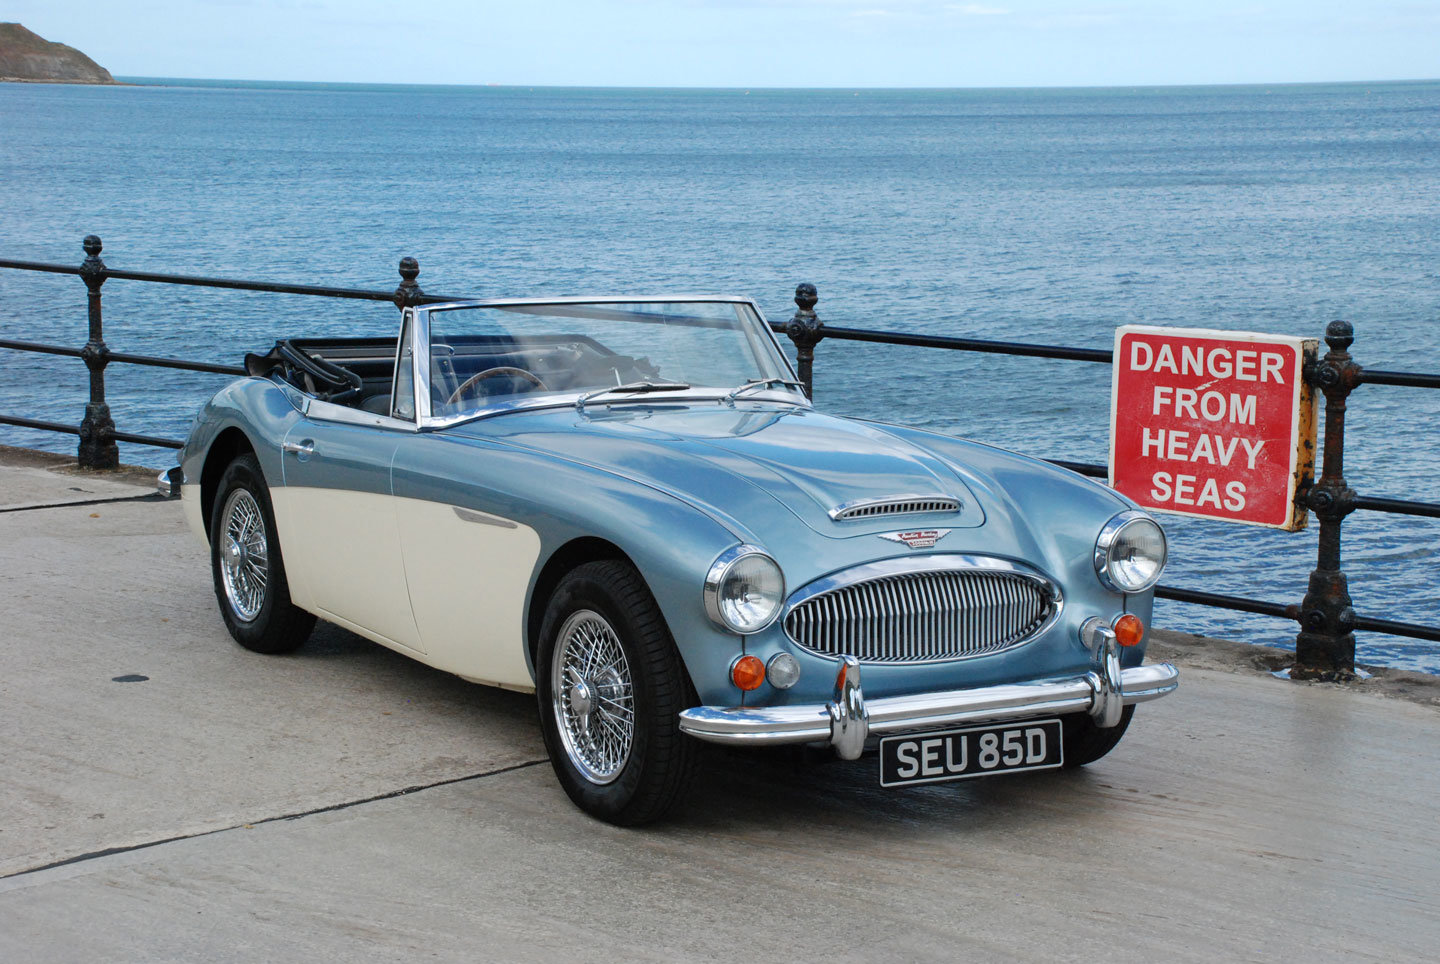 1966 Austin Healey 3000 MK 3 BJ8 phase 2 For Sale (picture 1 of 10)